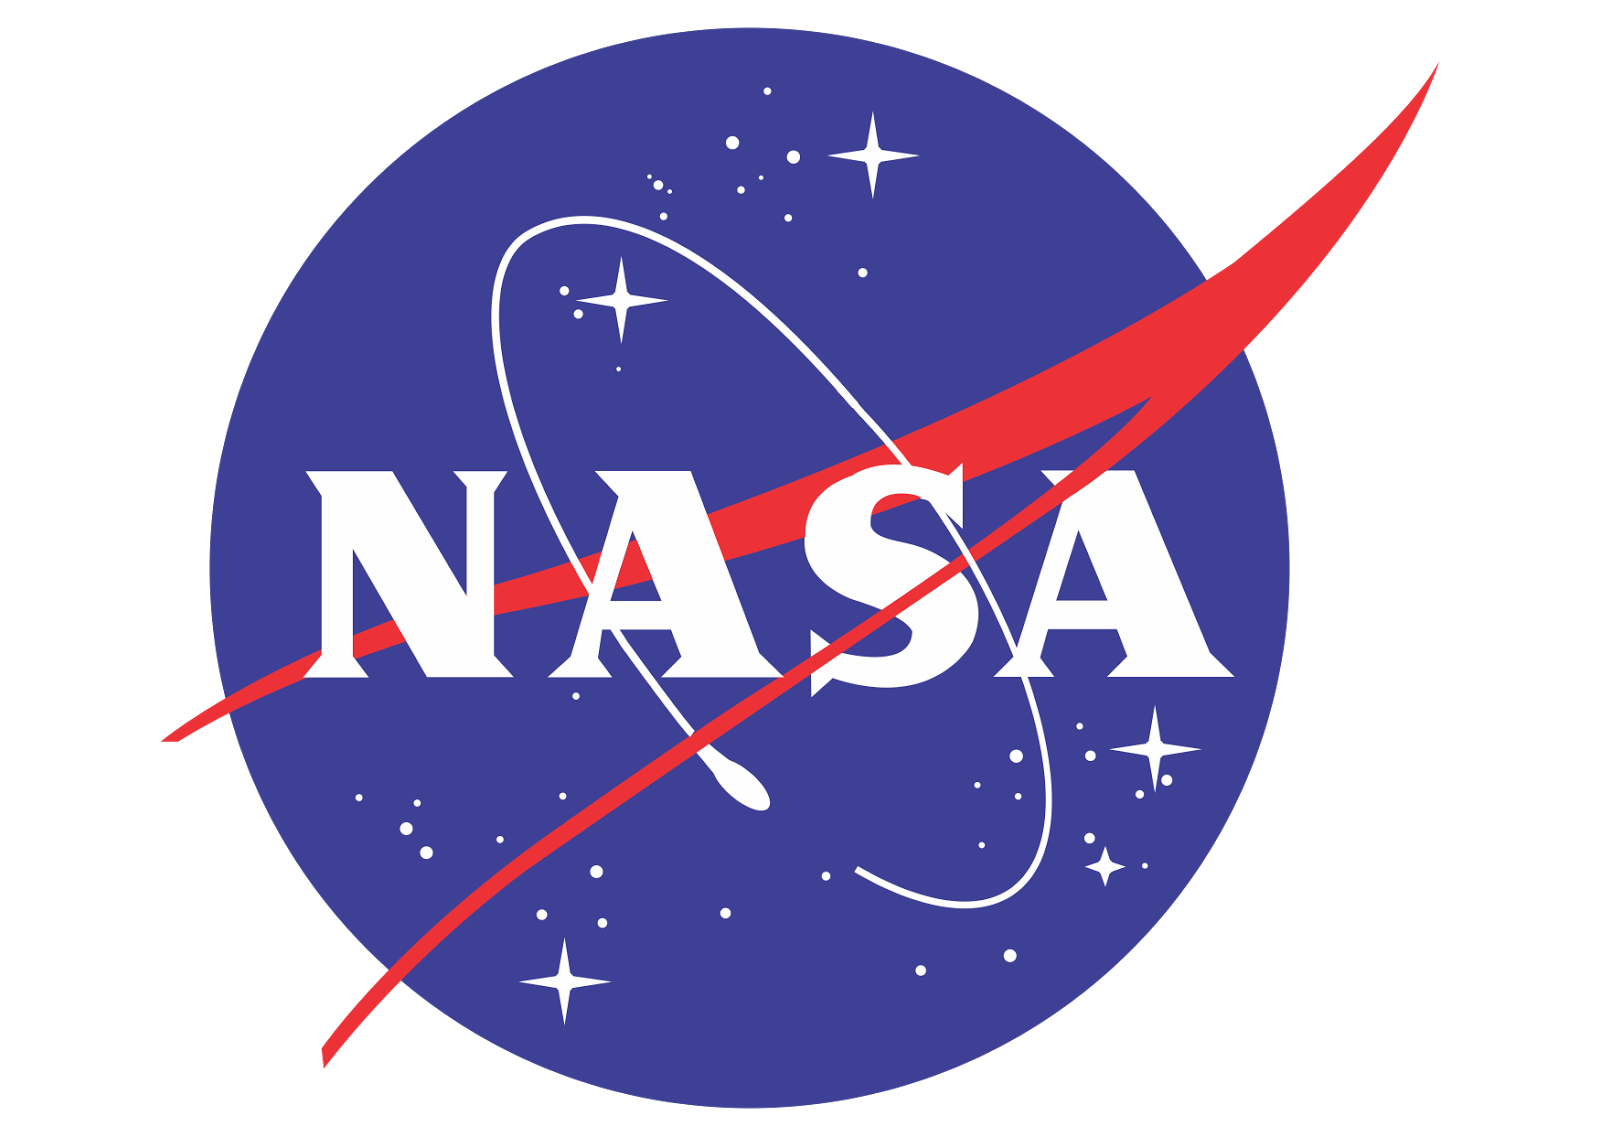 easy to draw nasa symbol - photo #6